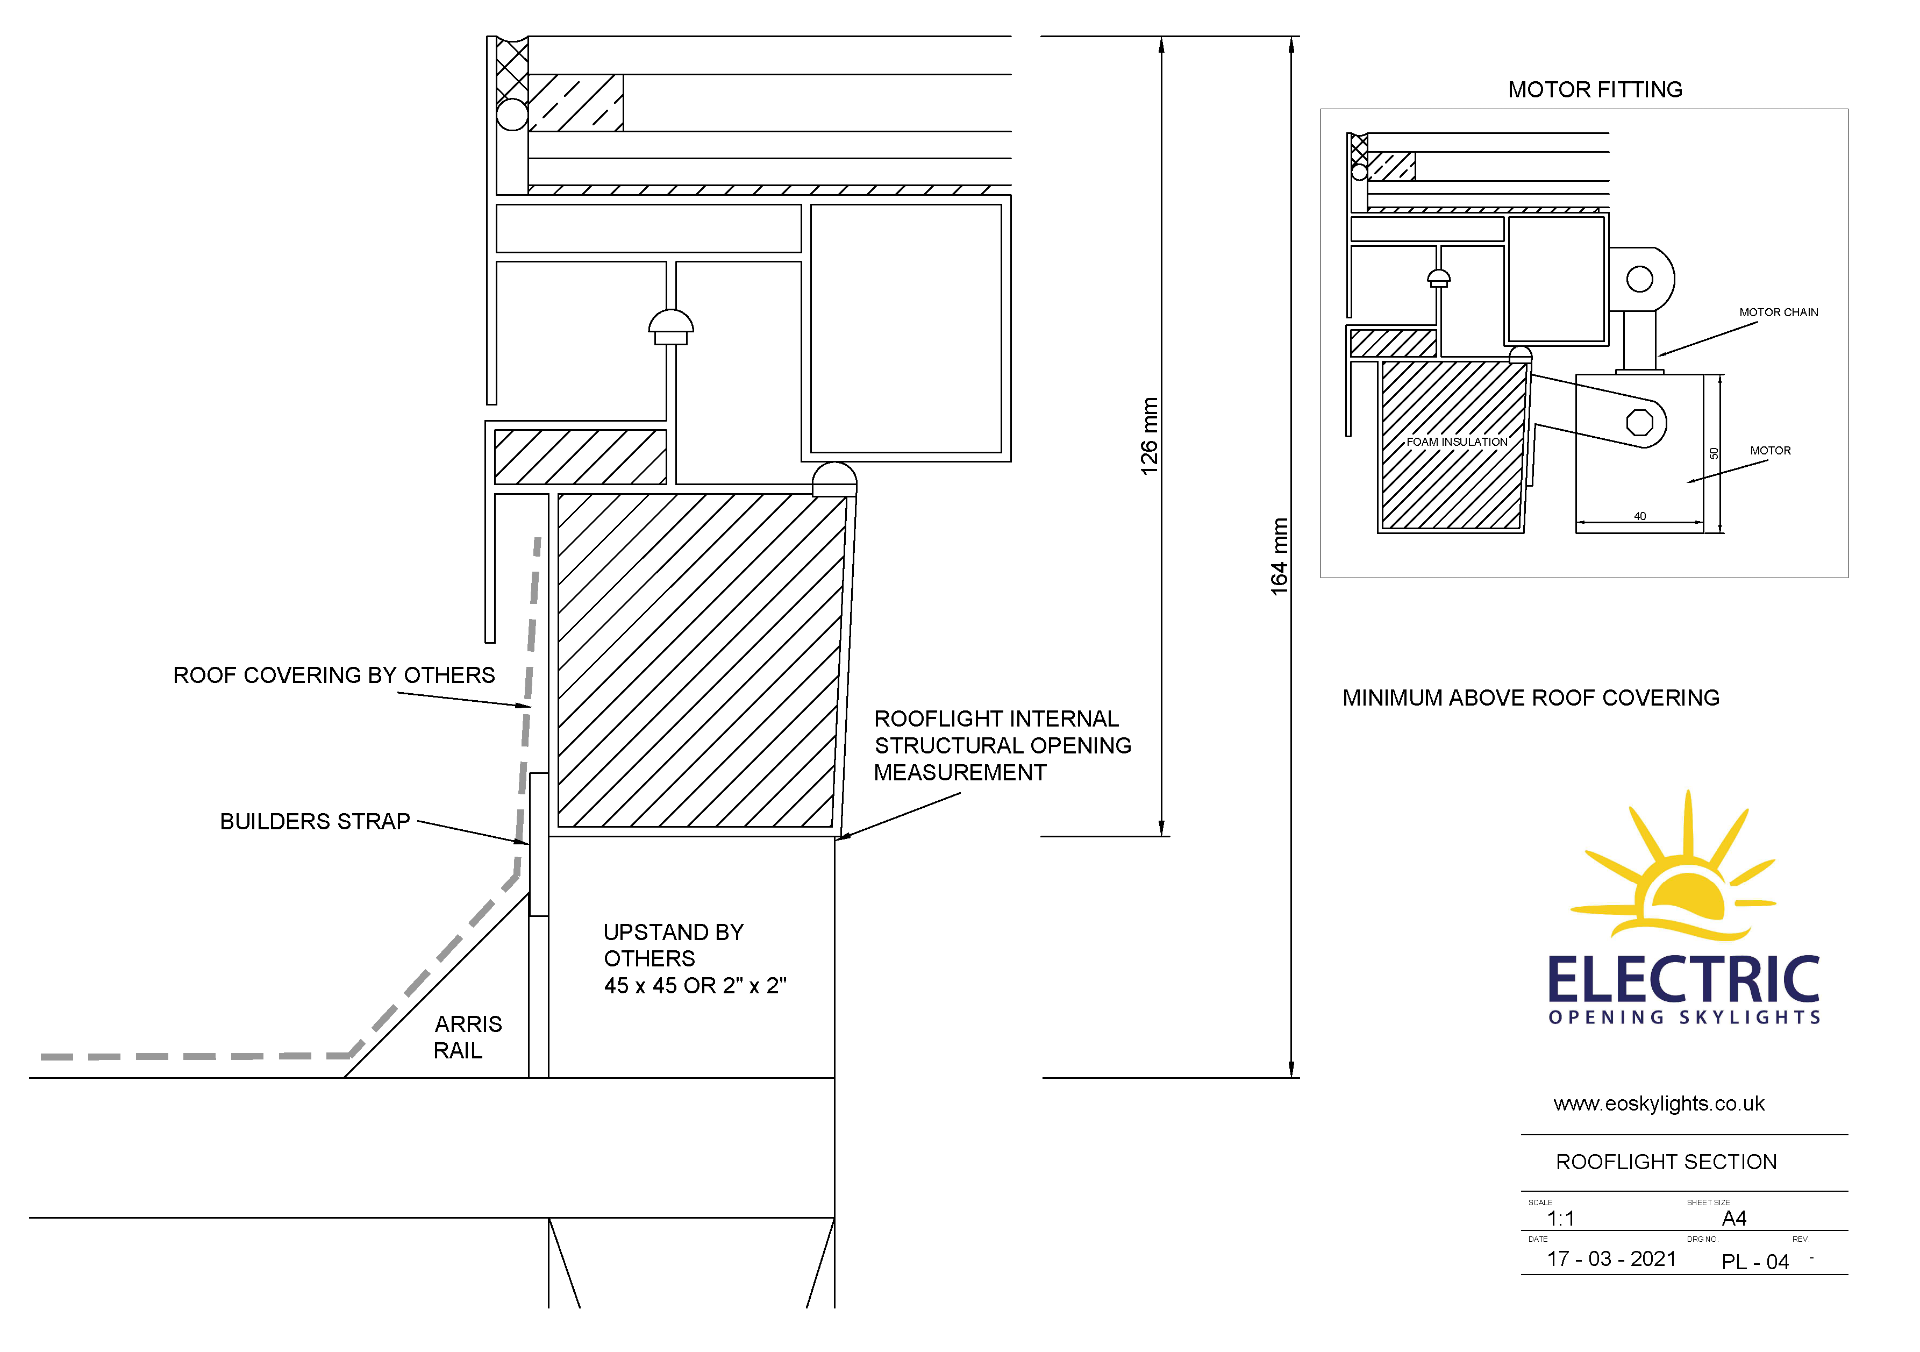 Panoroof (EOS) Electric Opening Skylight 600x900mm - Aluminiun Frame Double Glazed Laminated Self- - Image 3 of 6